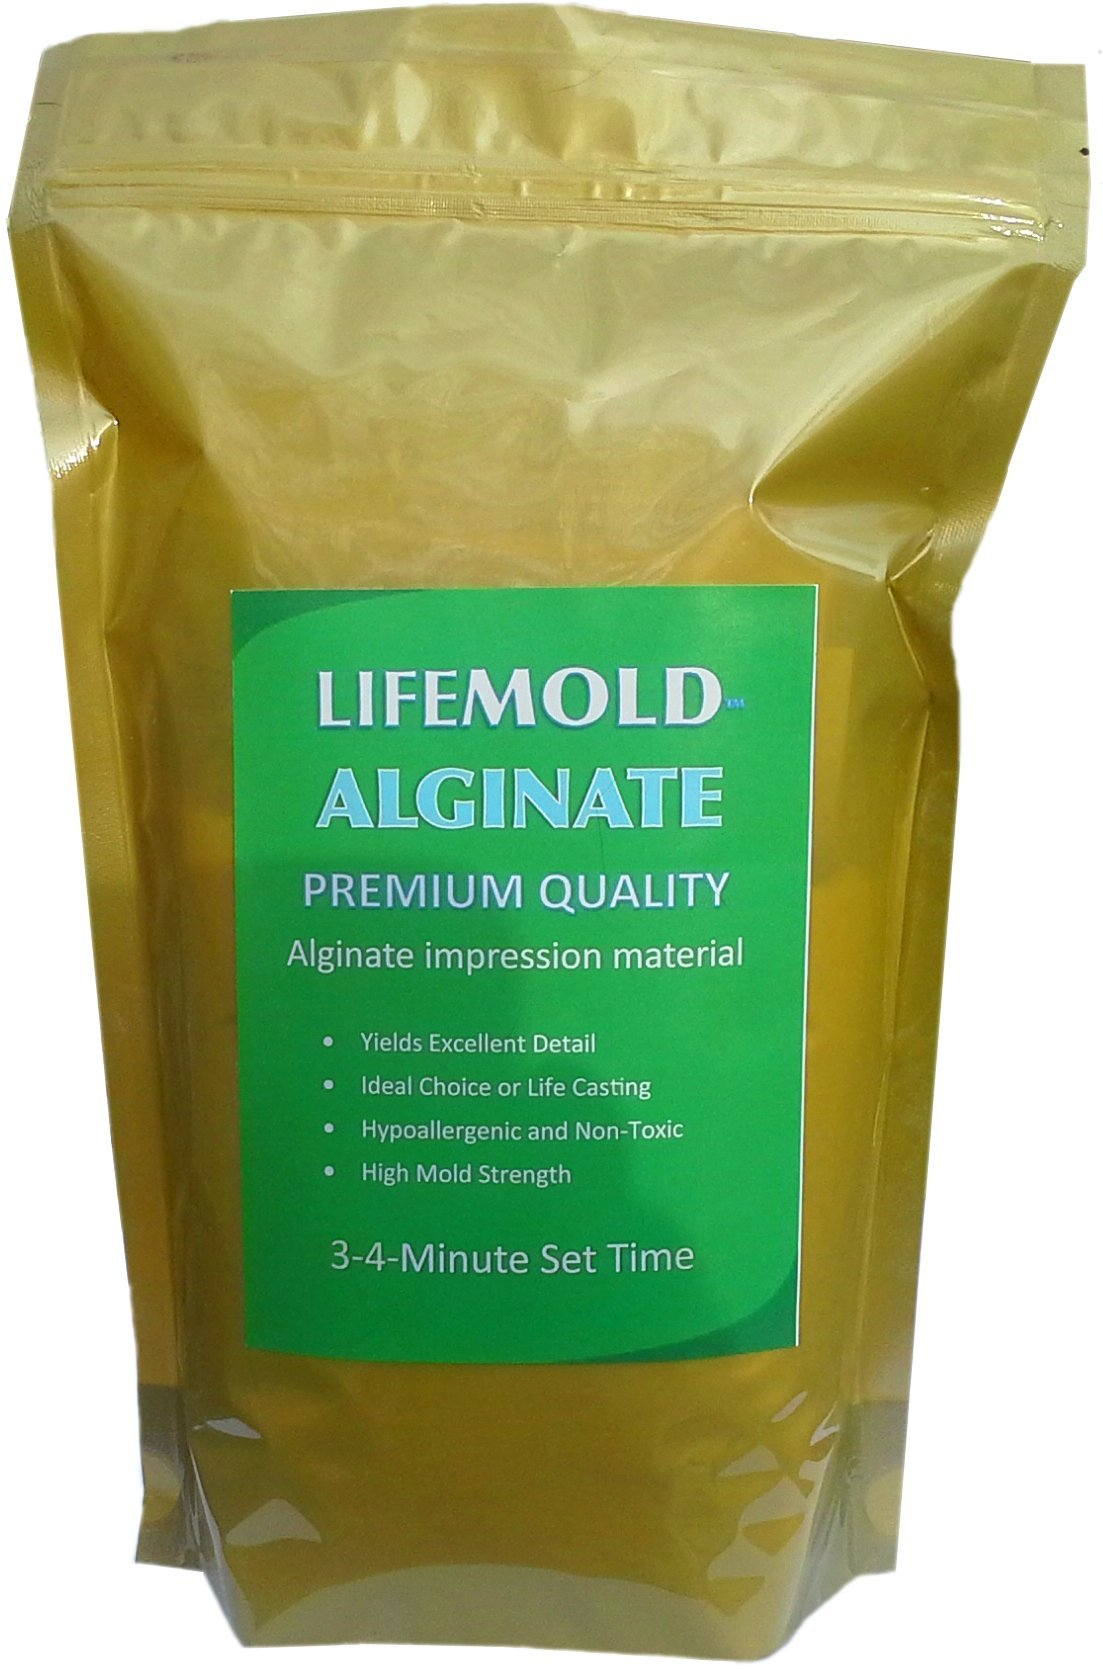 LifeMold Alginate 1-lb Skin-safe Mold Making Material by Environmolds LLC